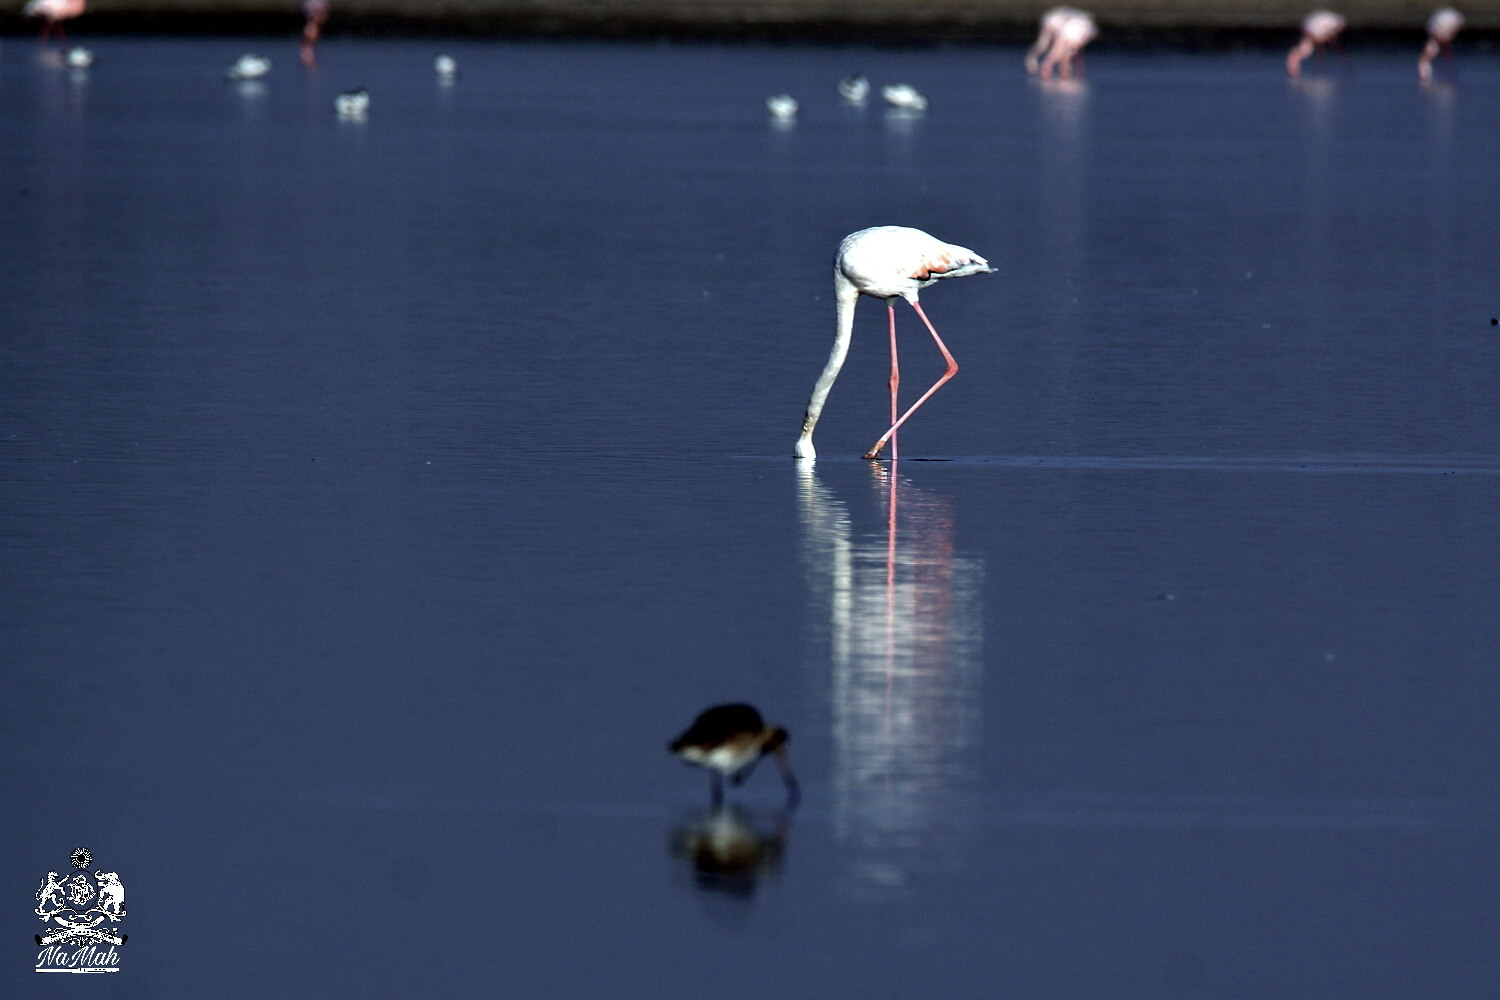 Flamingo in search of food with head dipped